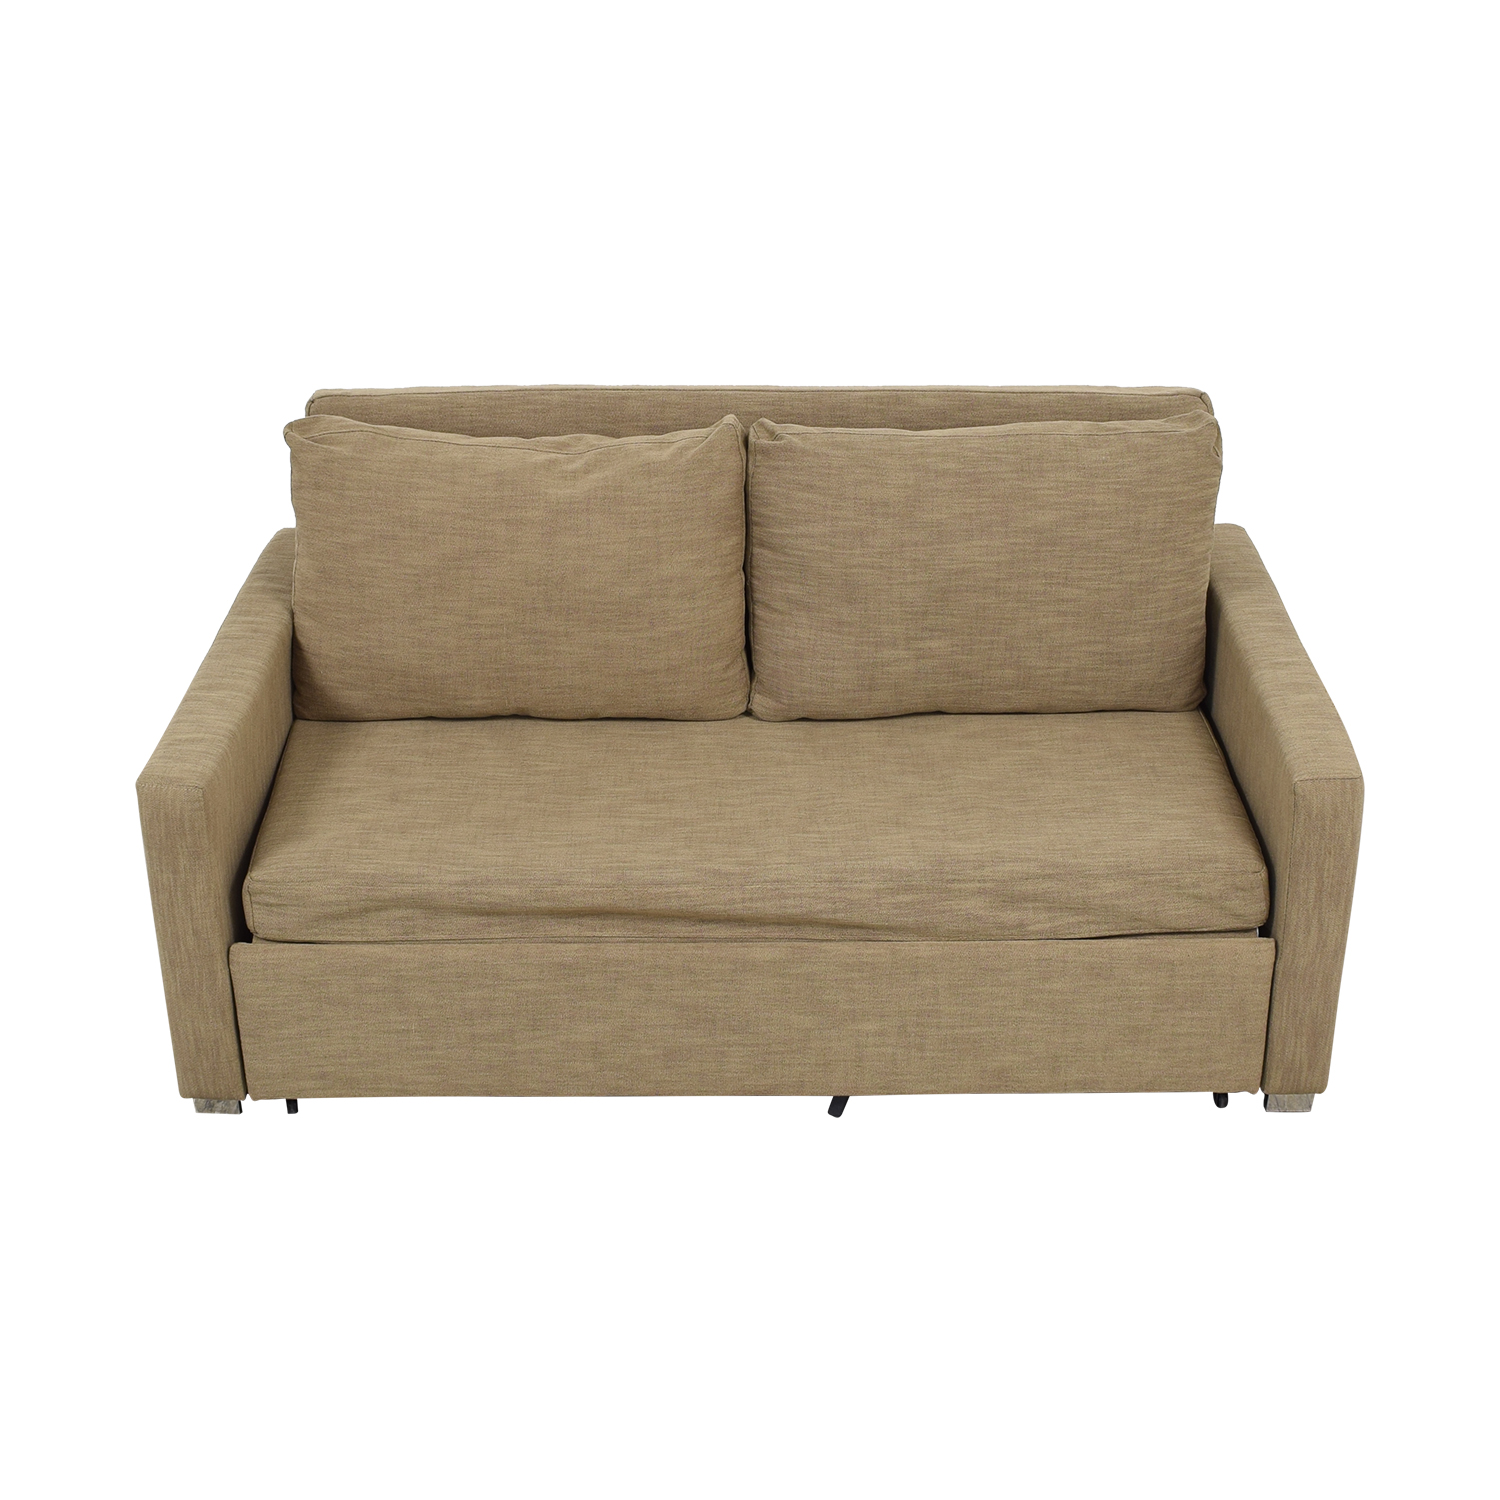 Expand Furniture Harmony Queen Sleeper Sofa coupon